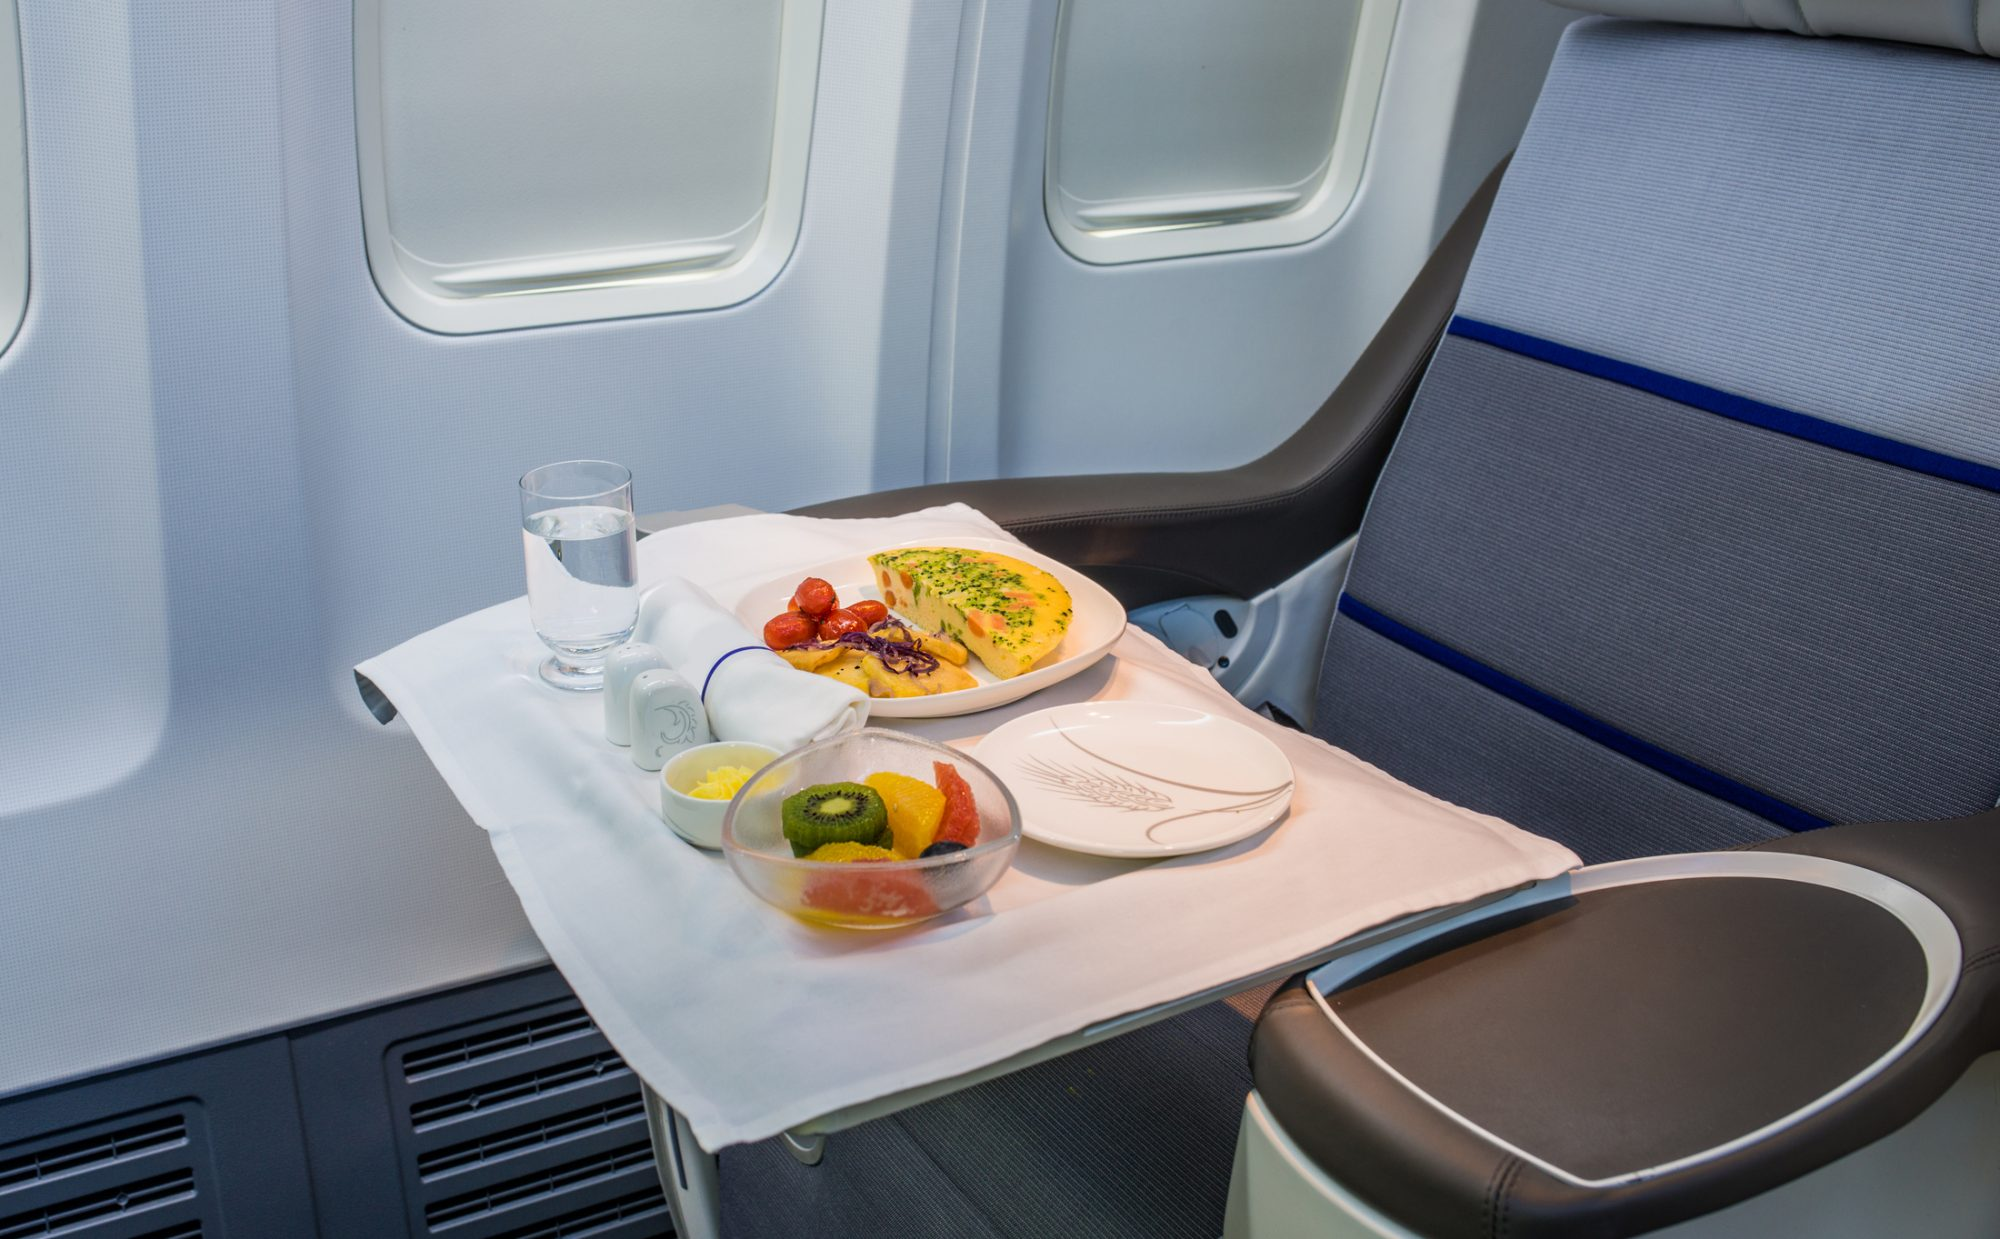 5 Things You Probably Didn't Know About Airplane Dining